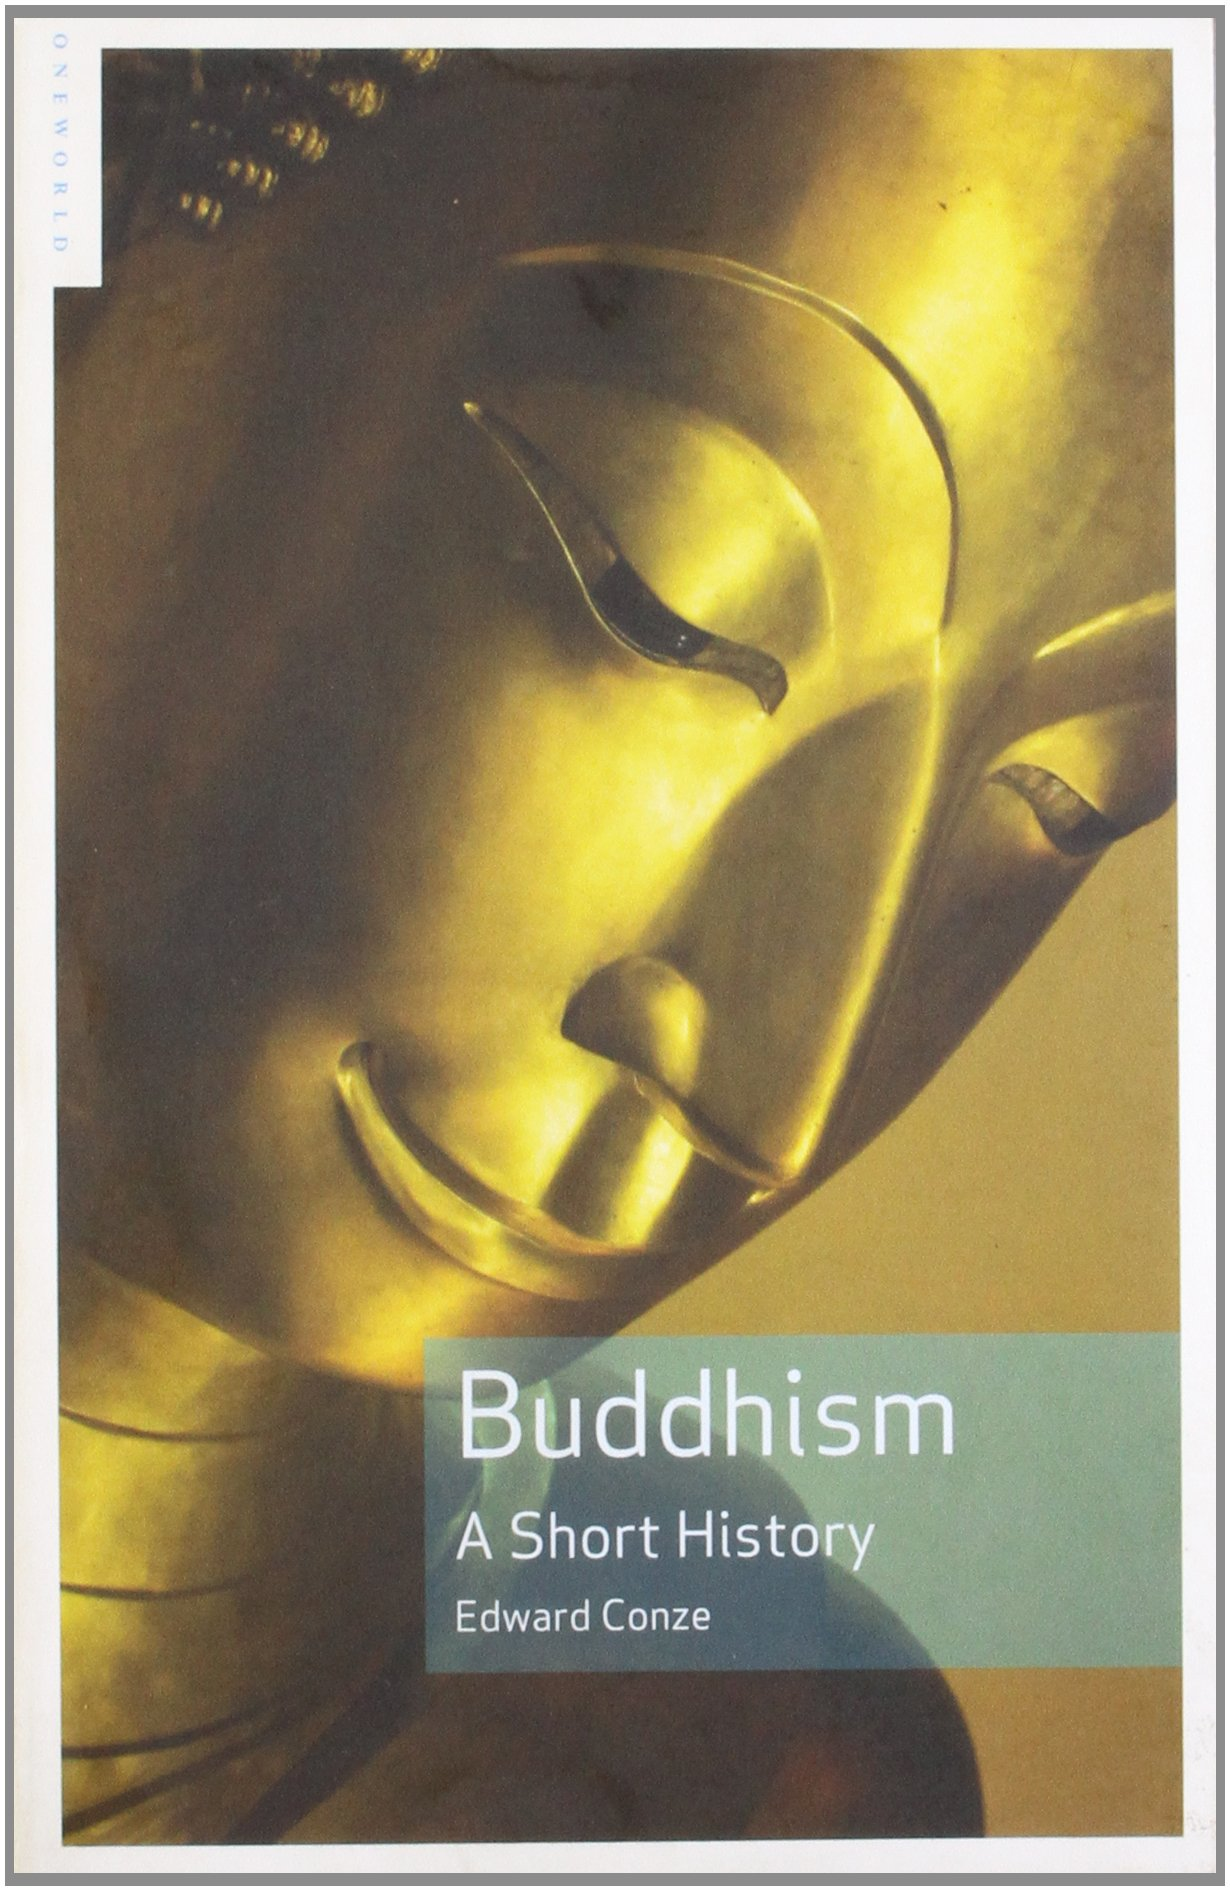 """the foundation and history of buddhism """"fifteenth-century buddhist history and buddhist approaches to colonial landscape in hong sayong's writings from the early 1920s"""" in korea in the middle: korean studies and area studies: essays in honour of boudewijn walraven, ed remco e breuker."""